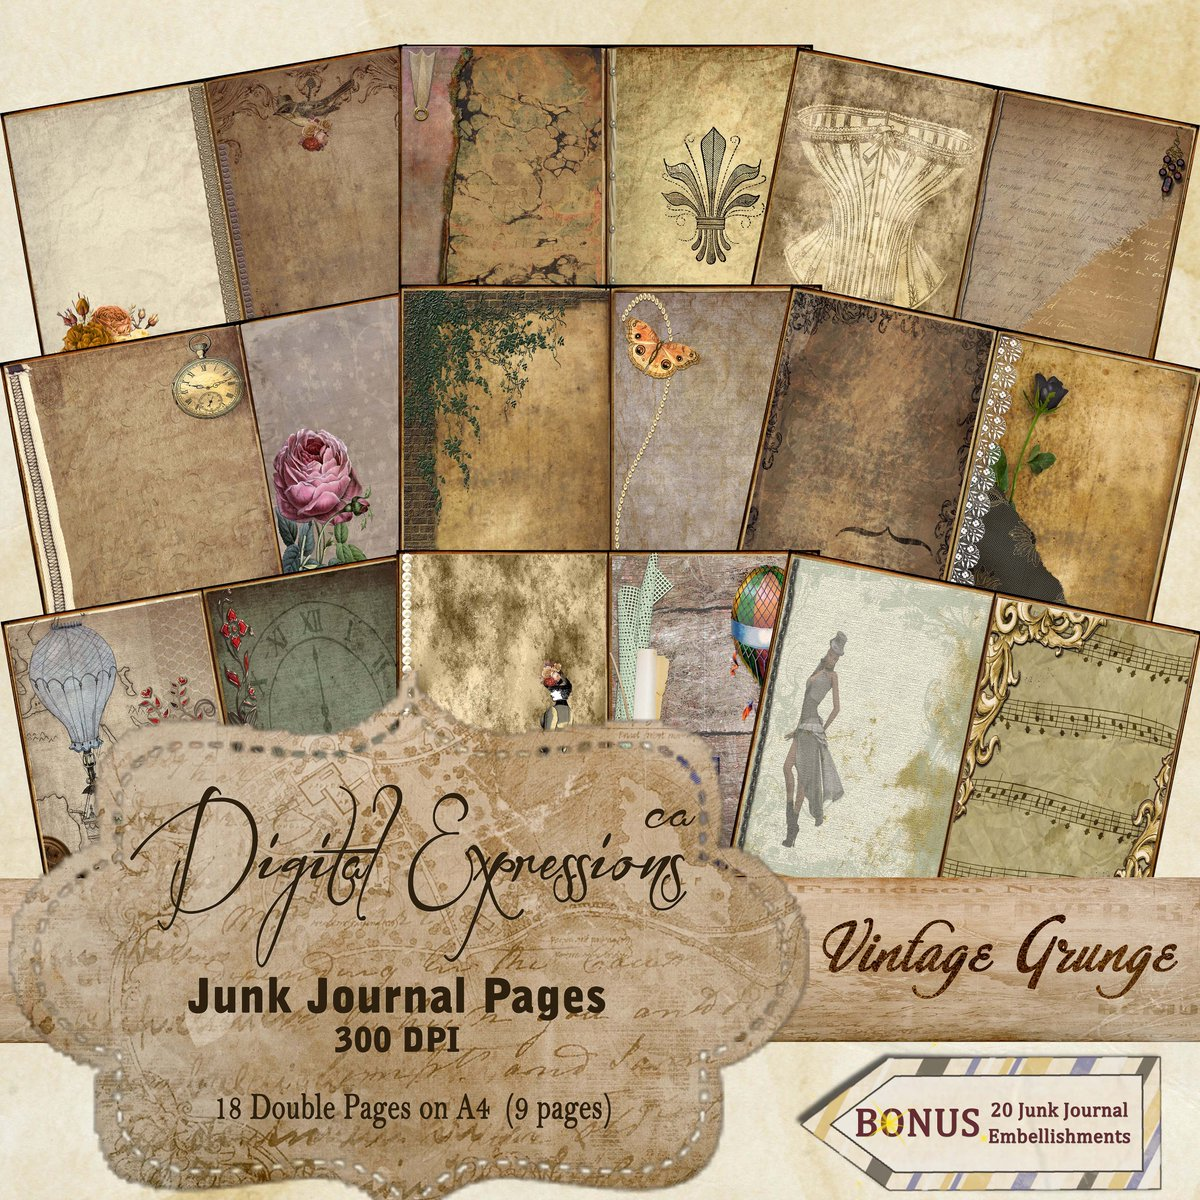 My #ETSY Shop http://ow.ly/APTt50vsZ9V  #JunkJournal #planner #ErinCondren #stickers #printable #scrapbooking #Digital #Paper packs #Bible #teacards #tags #Washitape #Steampunk -Trying to raise $25,000 for #Charity! Check for #Sale  50-60% off #Commercial Use TY for your supportpic.twitter.com/EHrpXnr55T